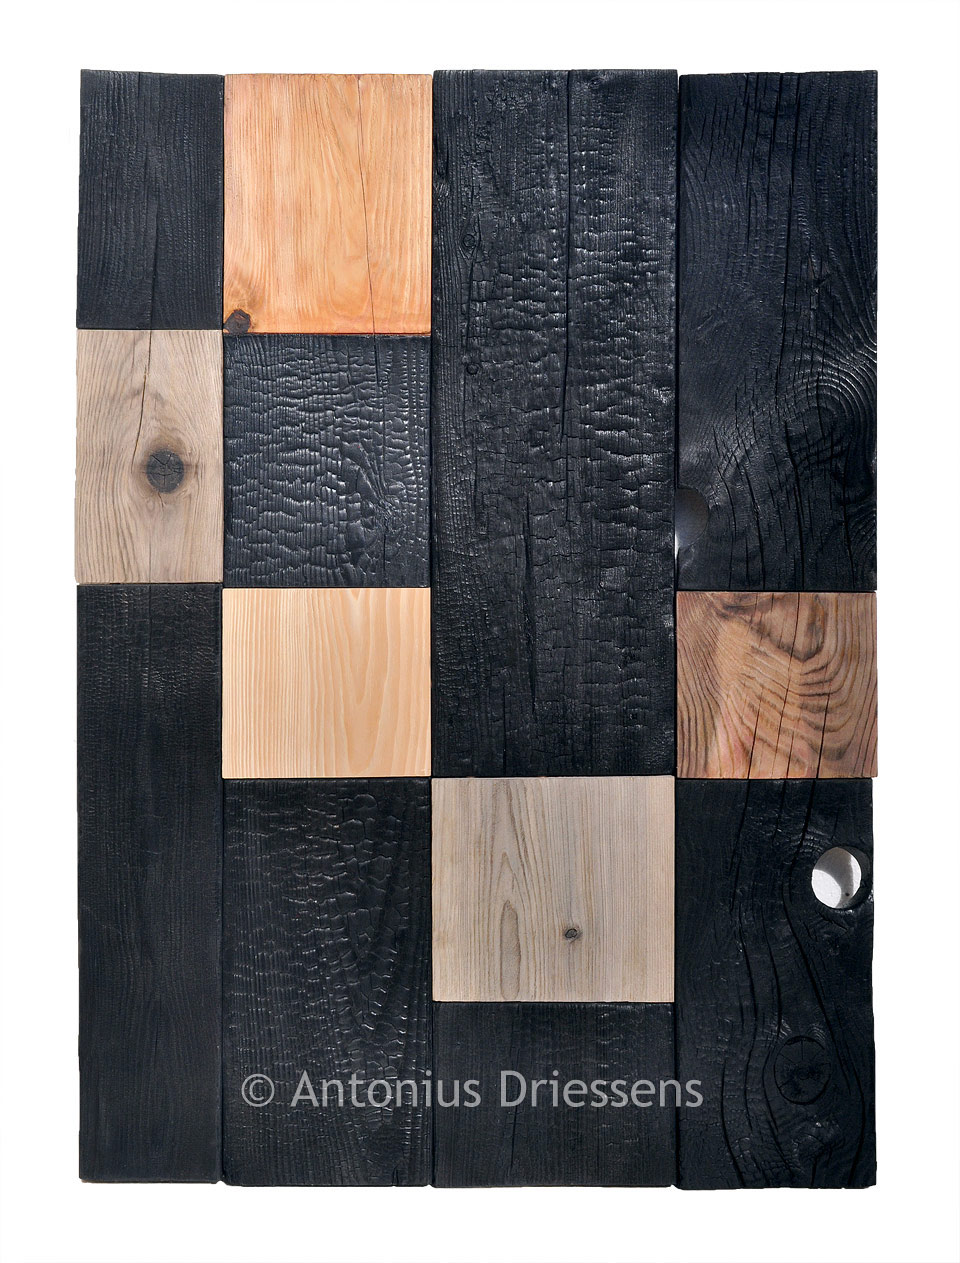 tableaux sculptures en bois antonius driessens. Black Bedroom Furniture Sets. Home Design Ideas